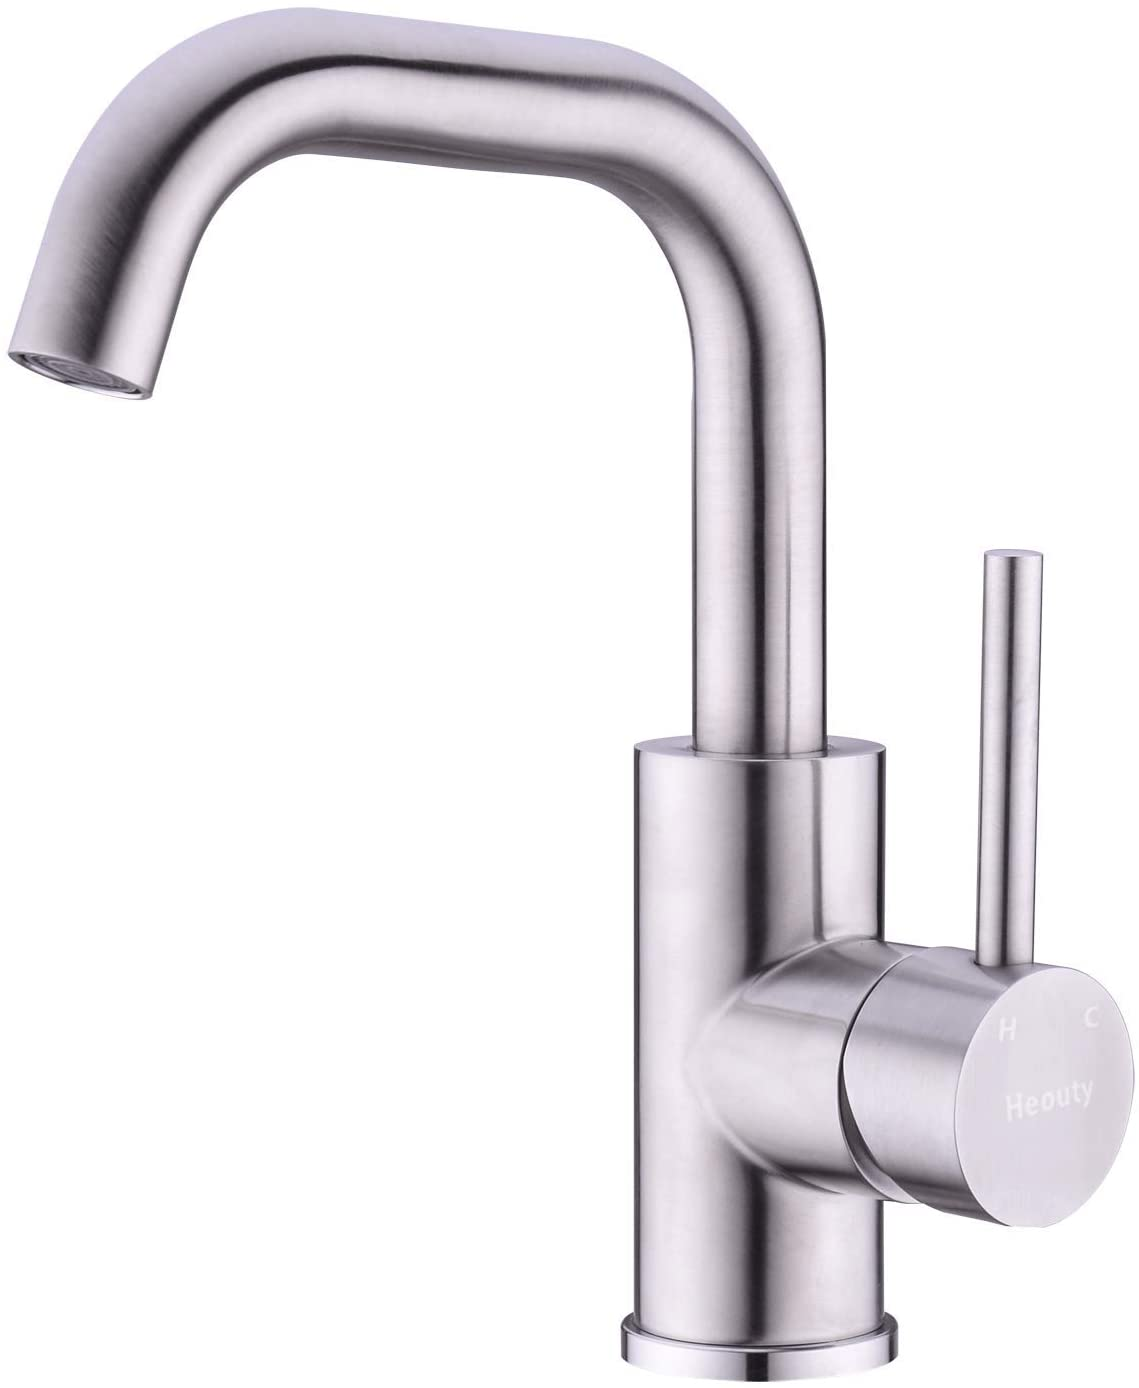 Heouty Stainless Steel Bathroom Faucet, Brushed Nickel Modern Single handle Swivel Spout Kitchen Bar Faucet,Single hole 360 Rotate Spout Small Kitchen Faucet